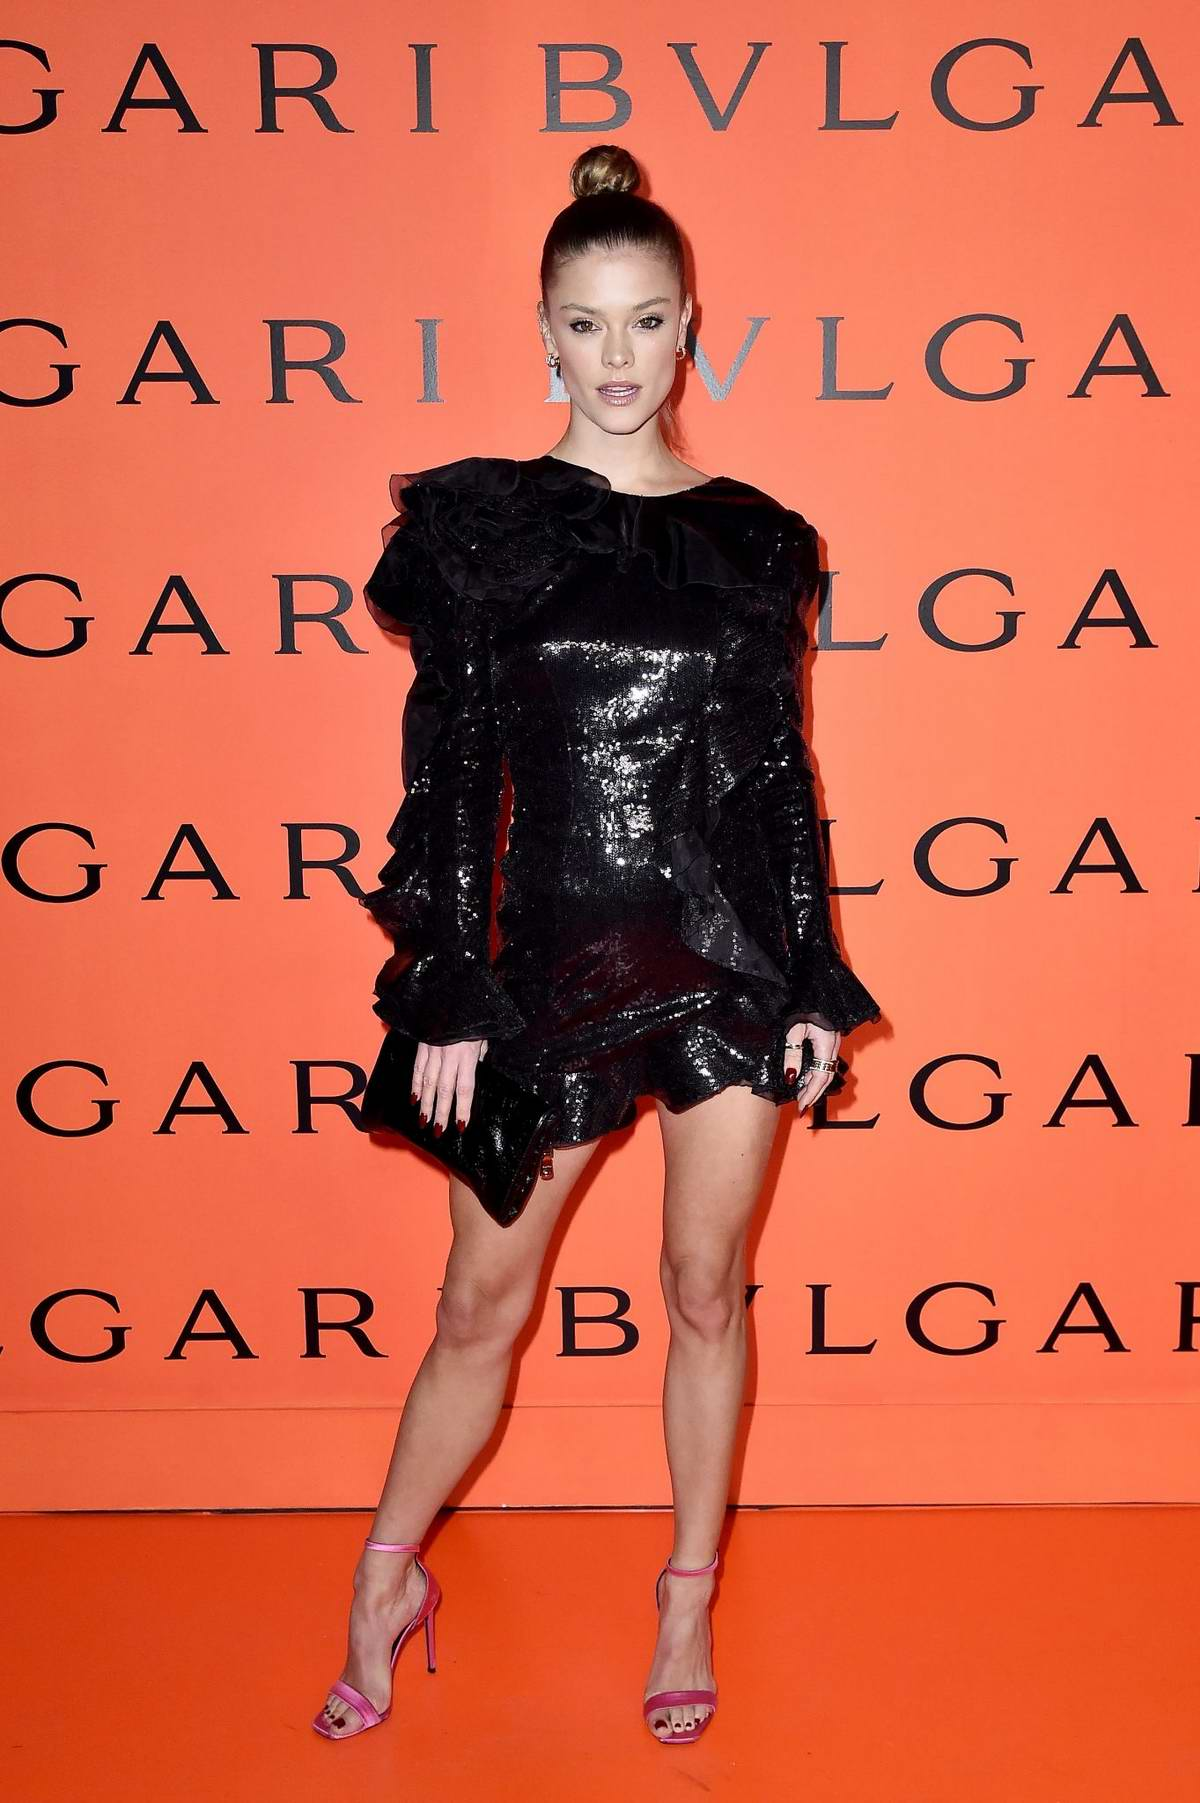 Nina Agdal attends as Bvlgari Celebrates B.zero1 Rock collection in Brooklyn, New York City